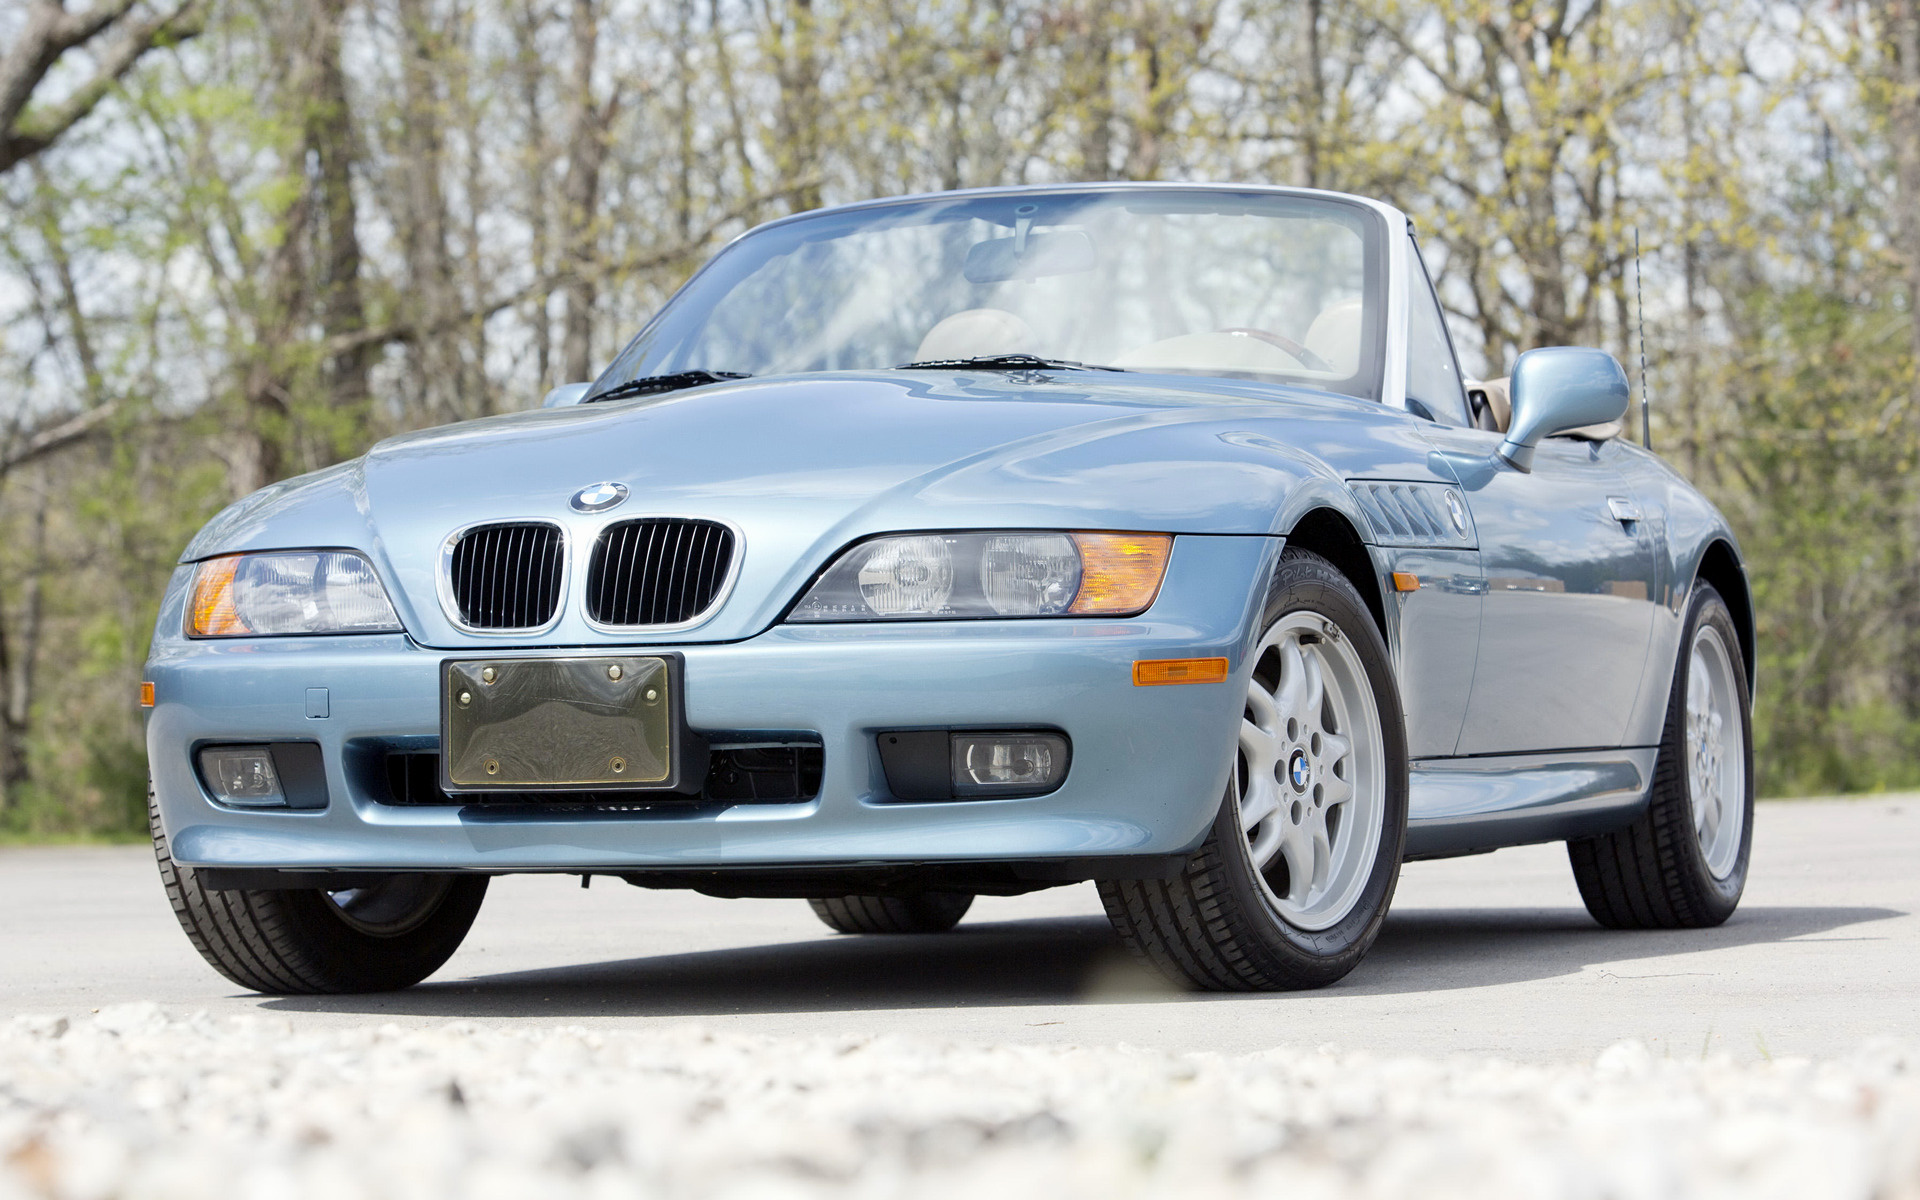 Bmw z3 1996 photo 8 Diagram Wide 85 Jp Motors Bmw Z3 James Bond Edition 1996 Wallpapers And Hd Images Car Pixel